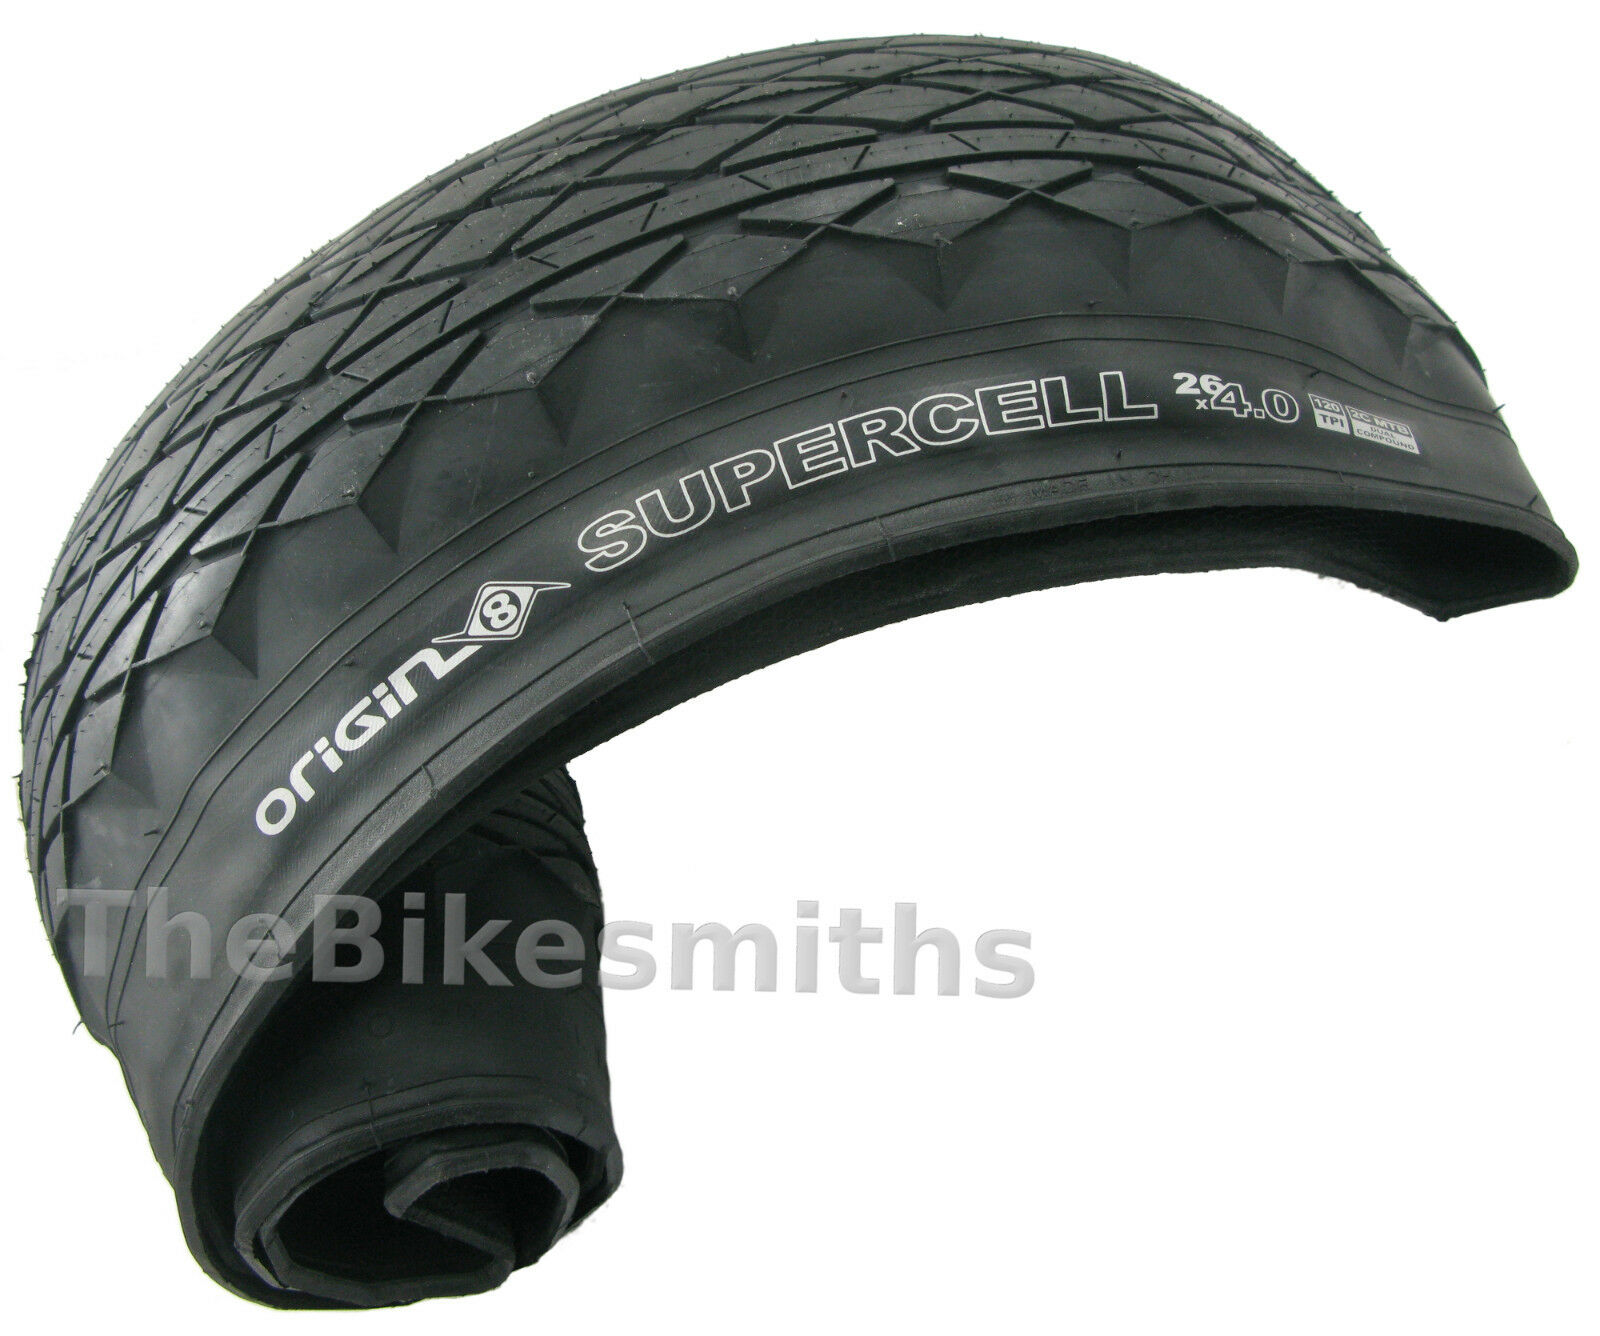 Origin-8 Supercell Tire Or8 Supercell 26x4.0 Wire Bk//bk